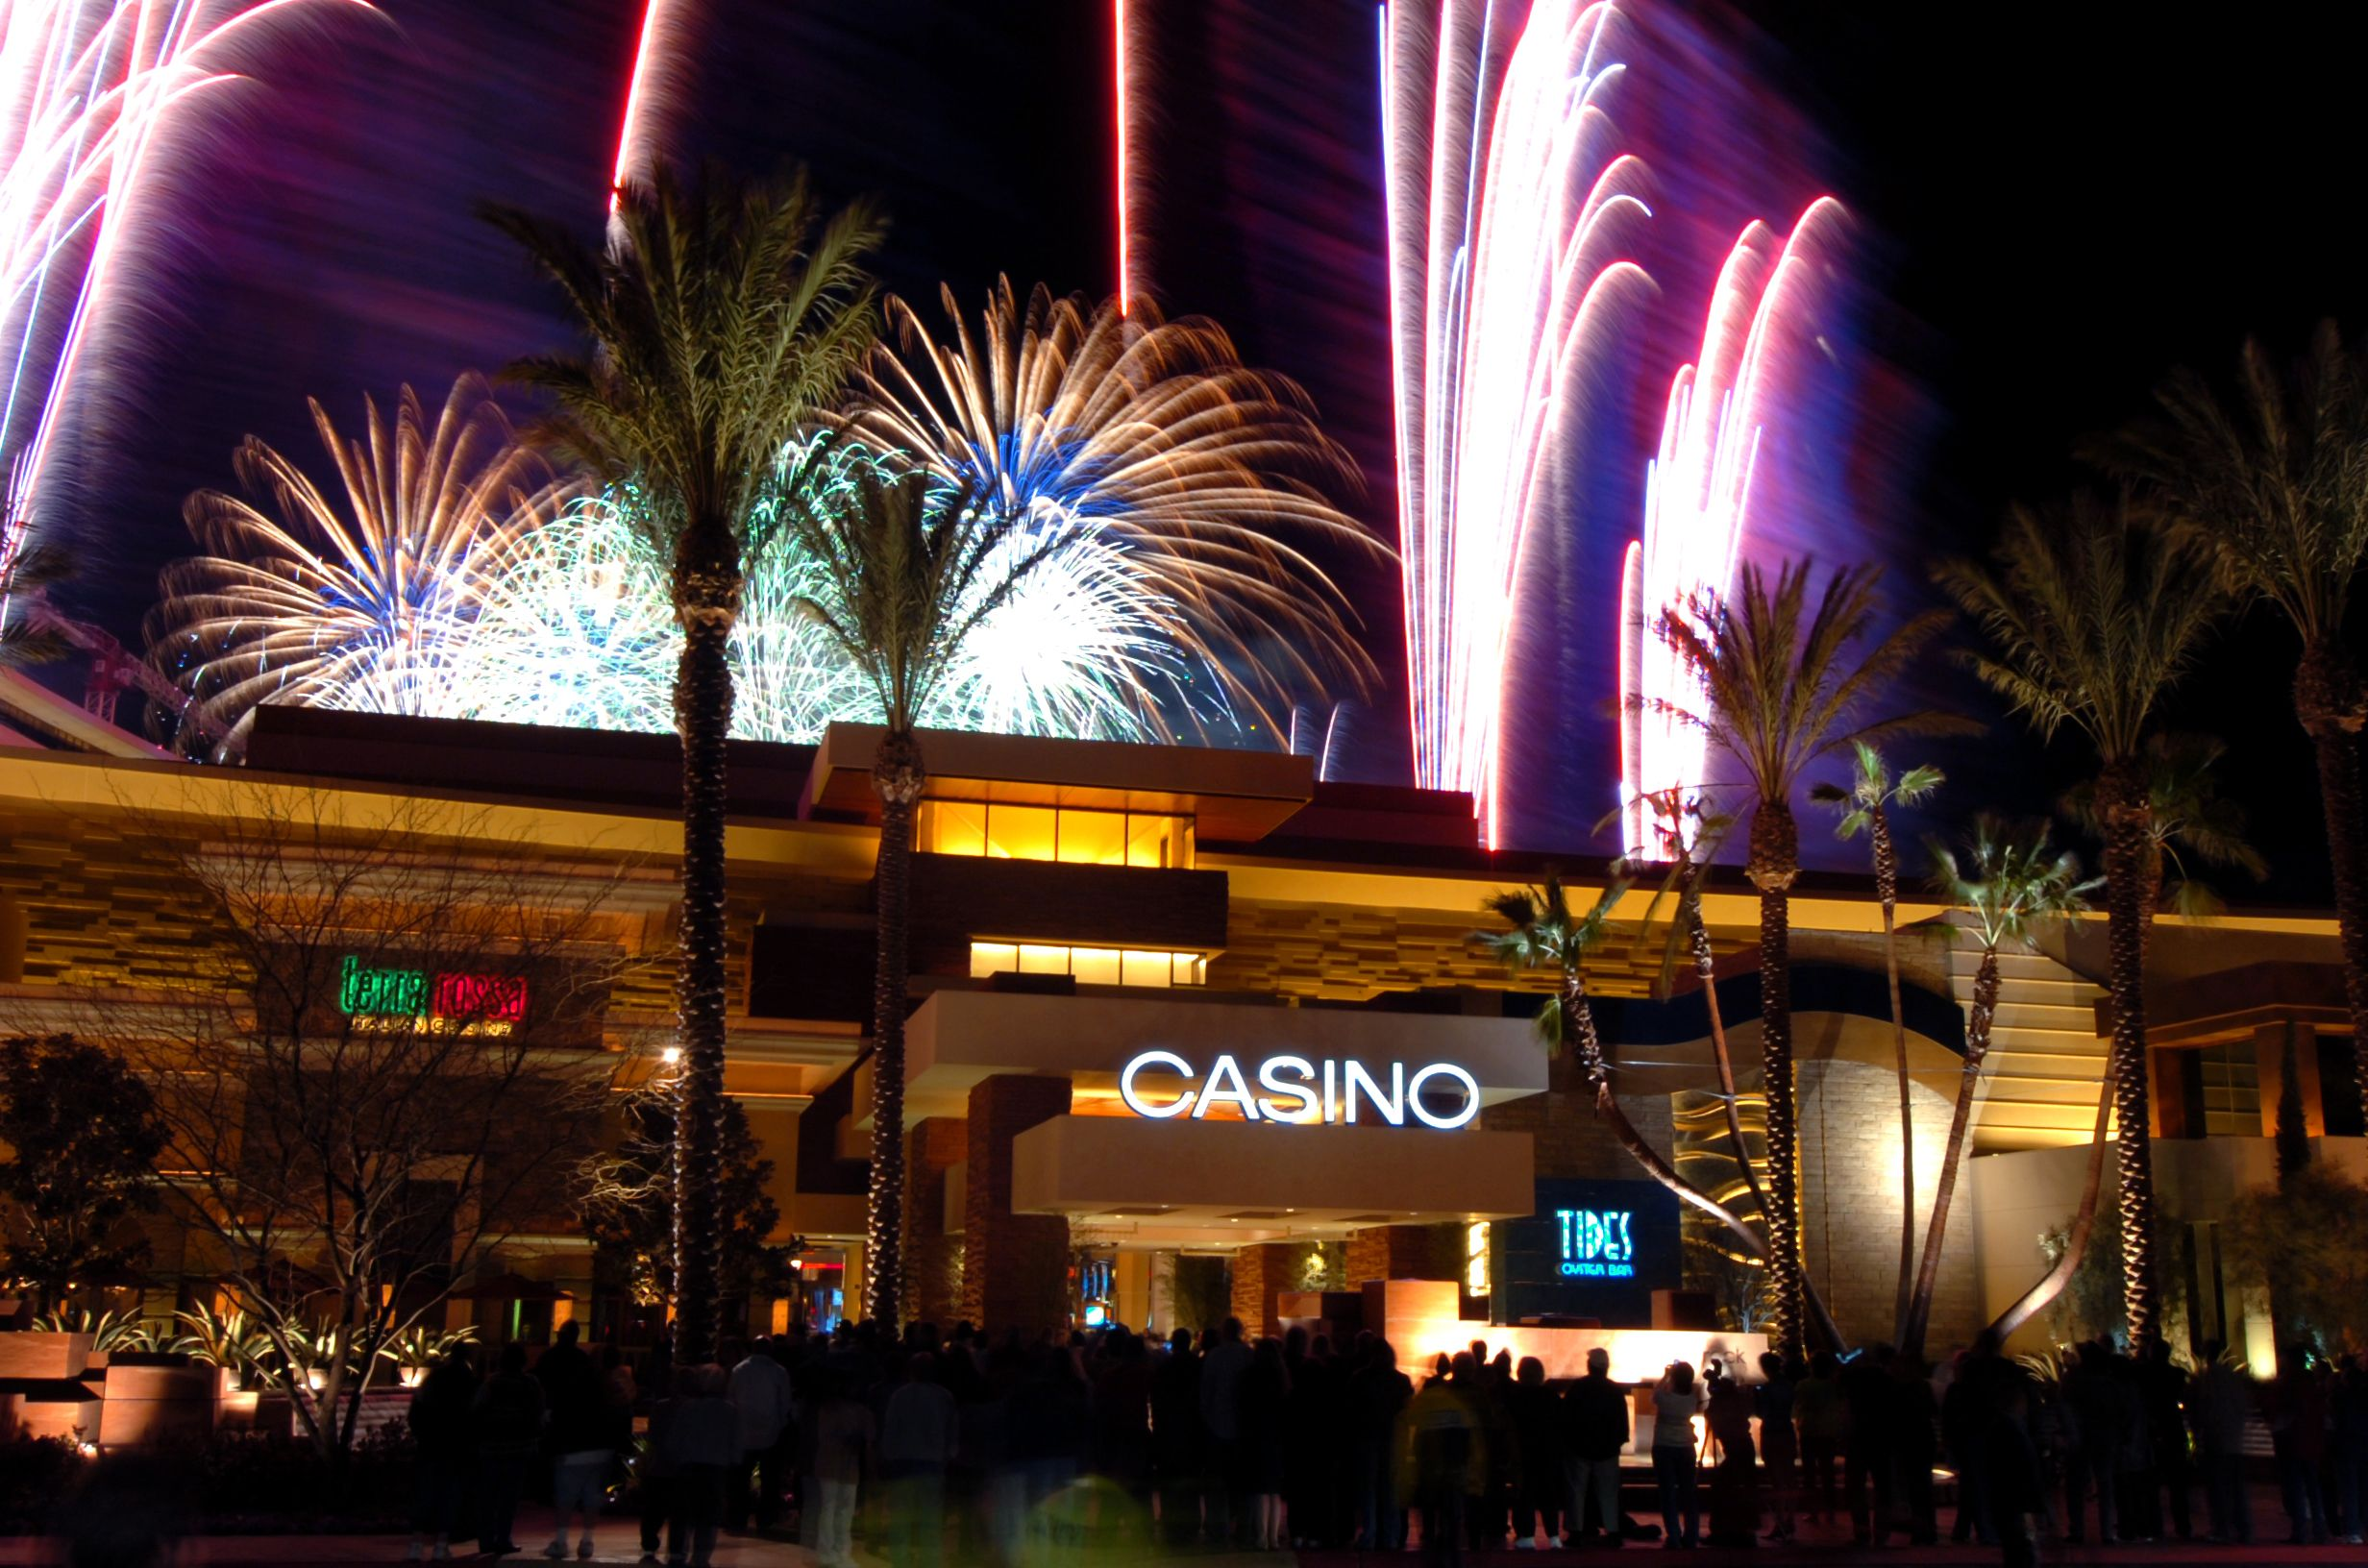 New Year's Eve fireworks at Red Rock Hotel in Vegas Las